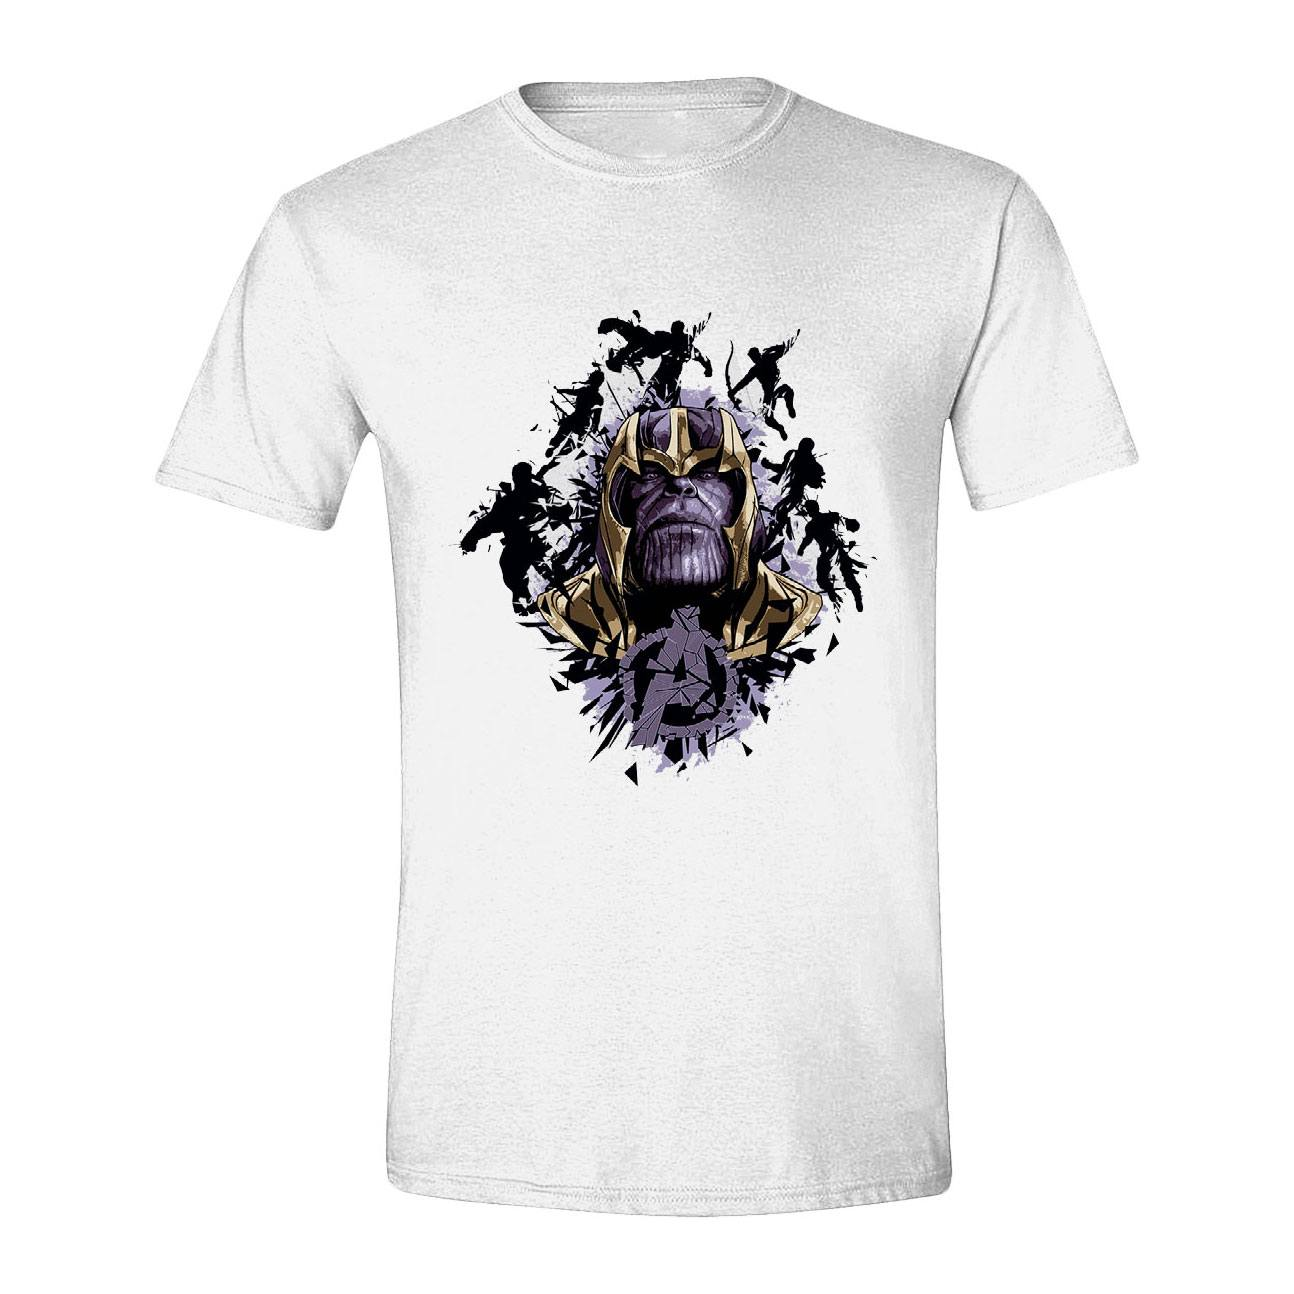 Avengers : Endgame T-Shirt Warlord Thanos (S)